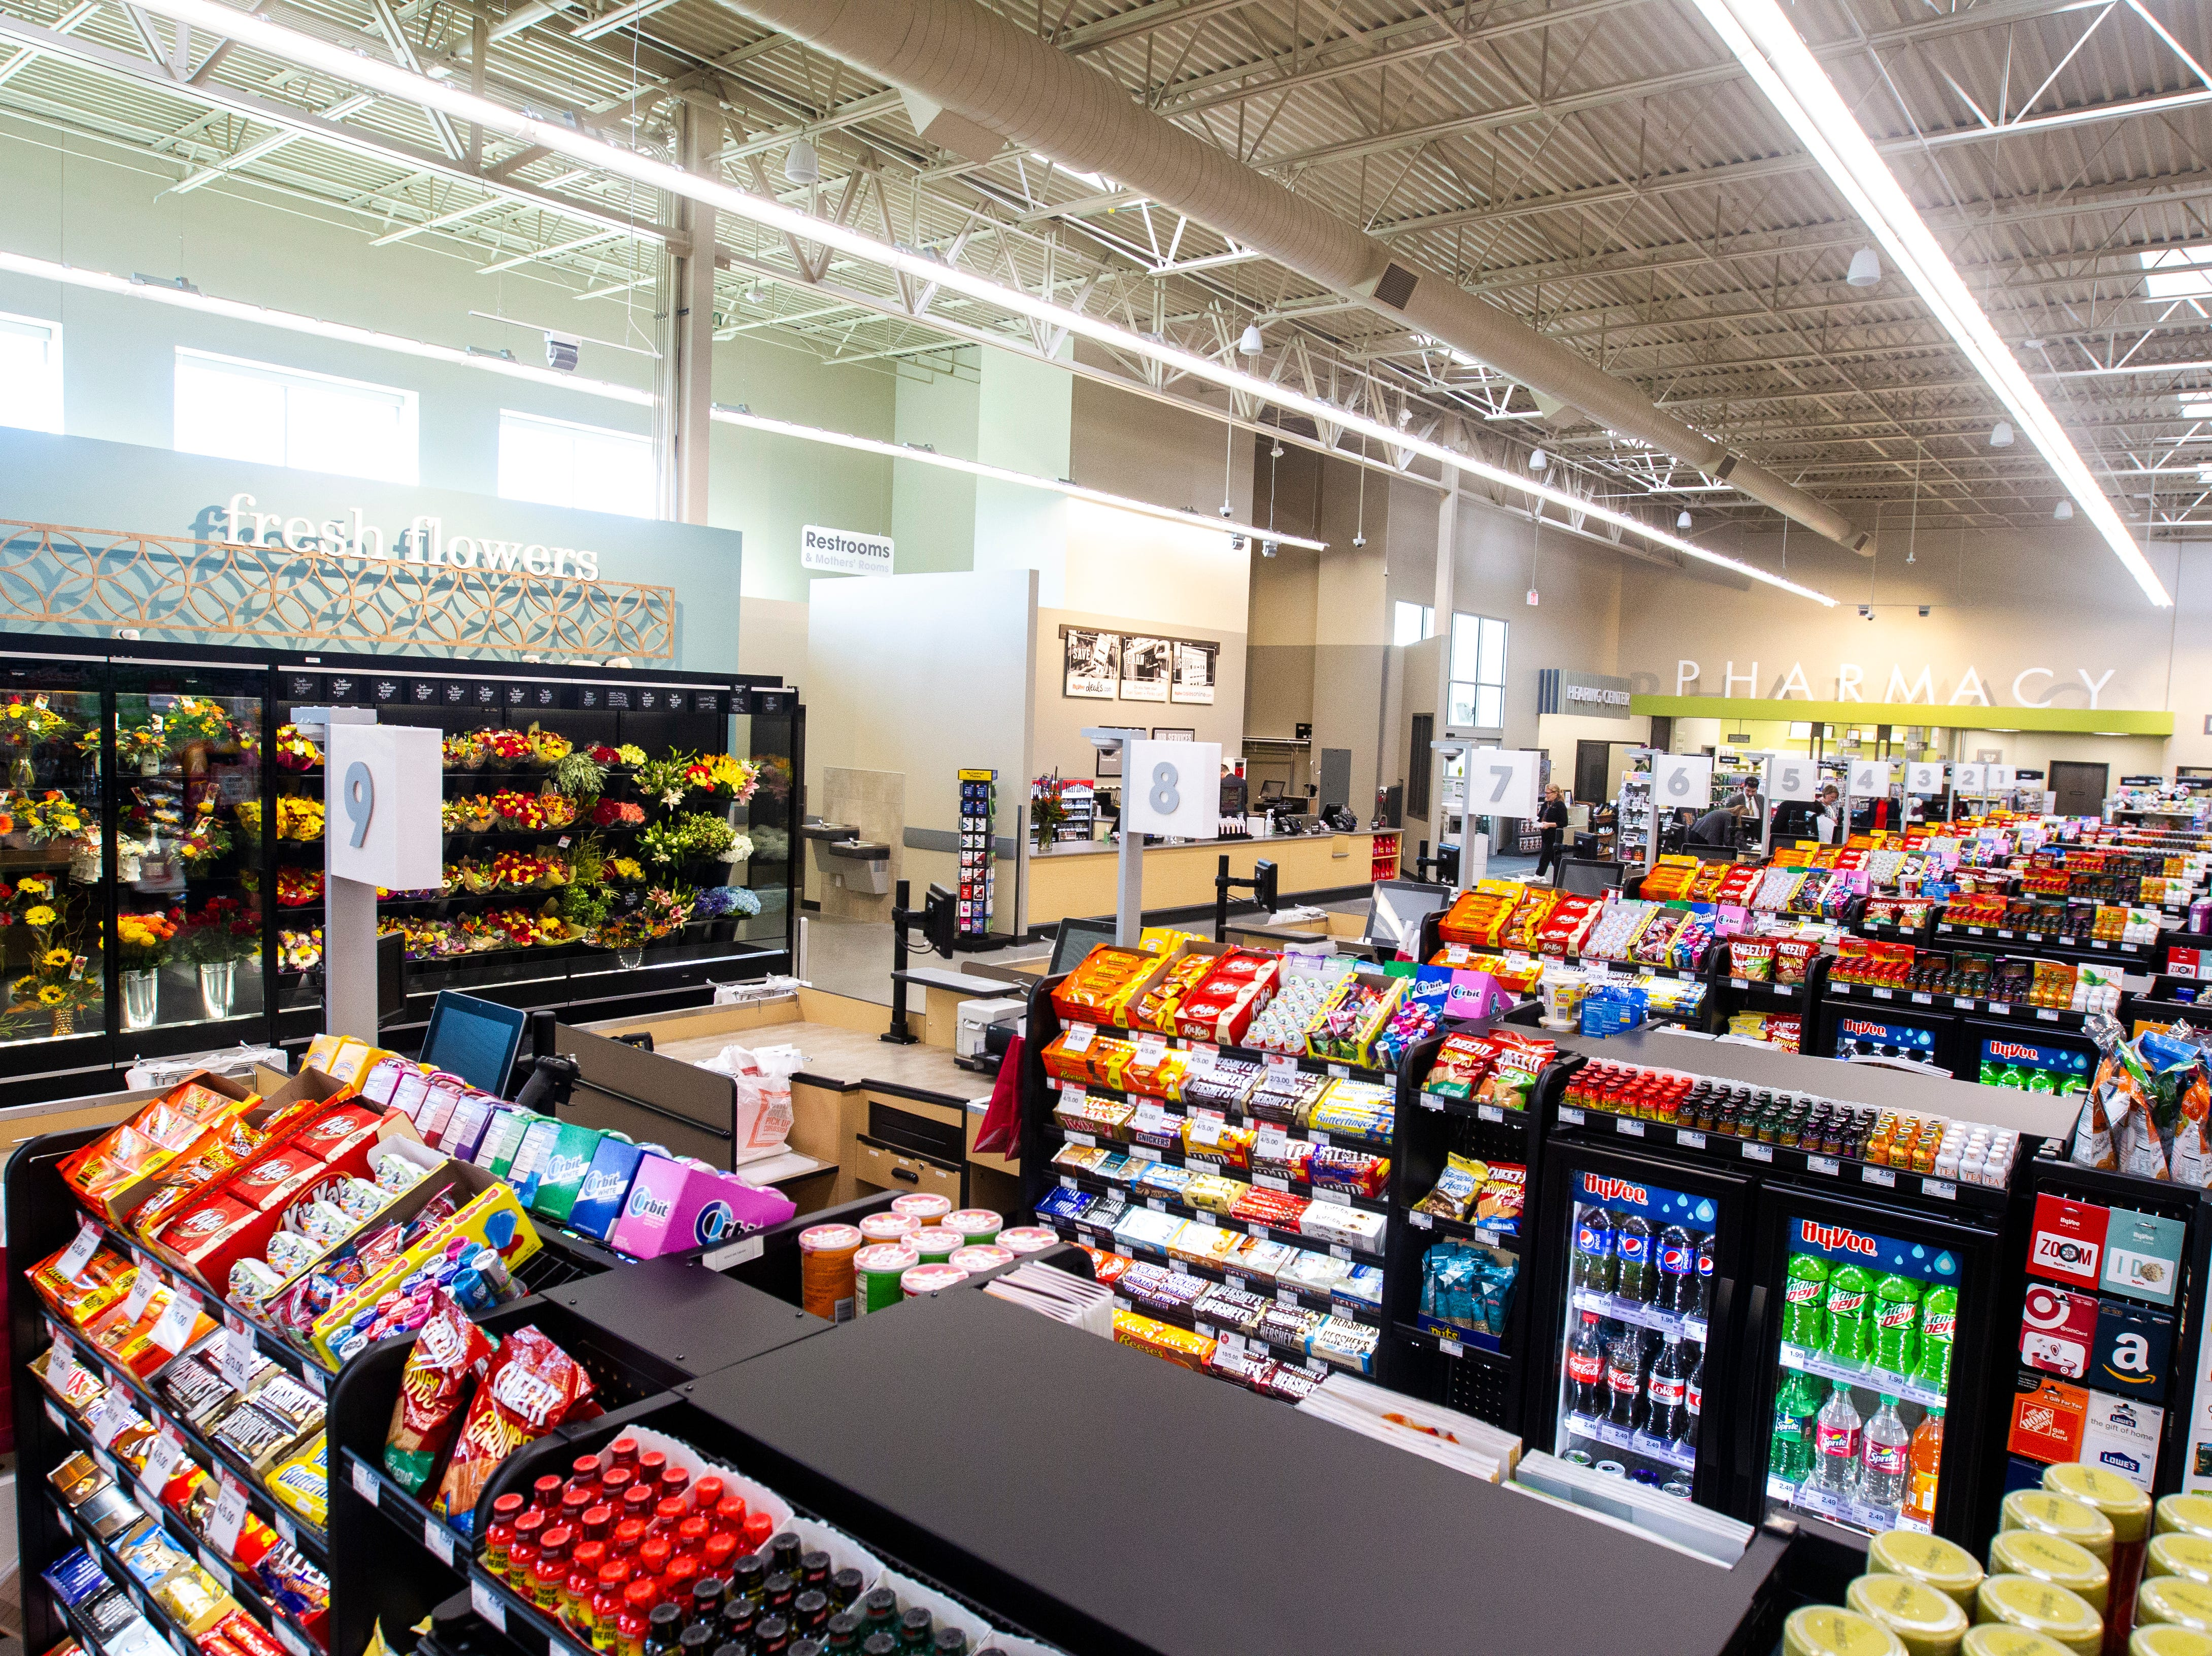 Checkout aisles at a new Hy-Vee on Monday, Oct. 15, 2018, along Crosspark Road in Coralville, Iowa.